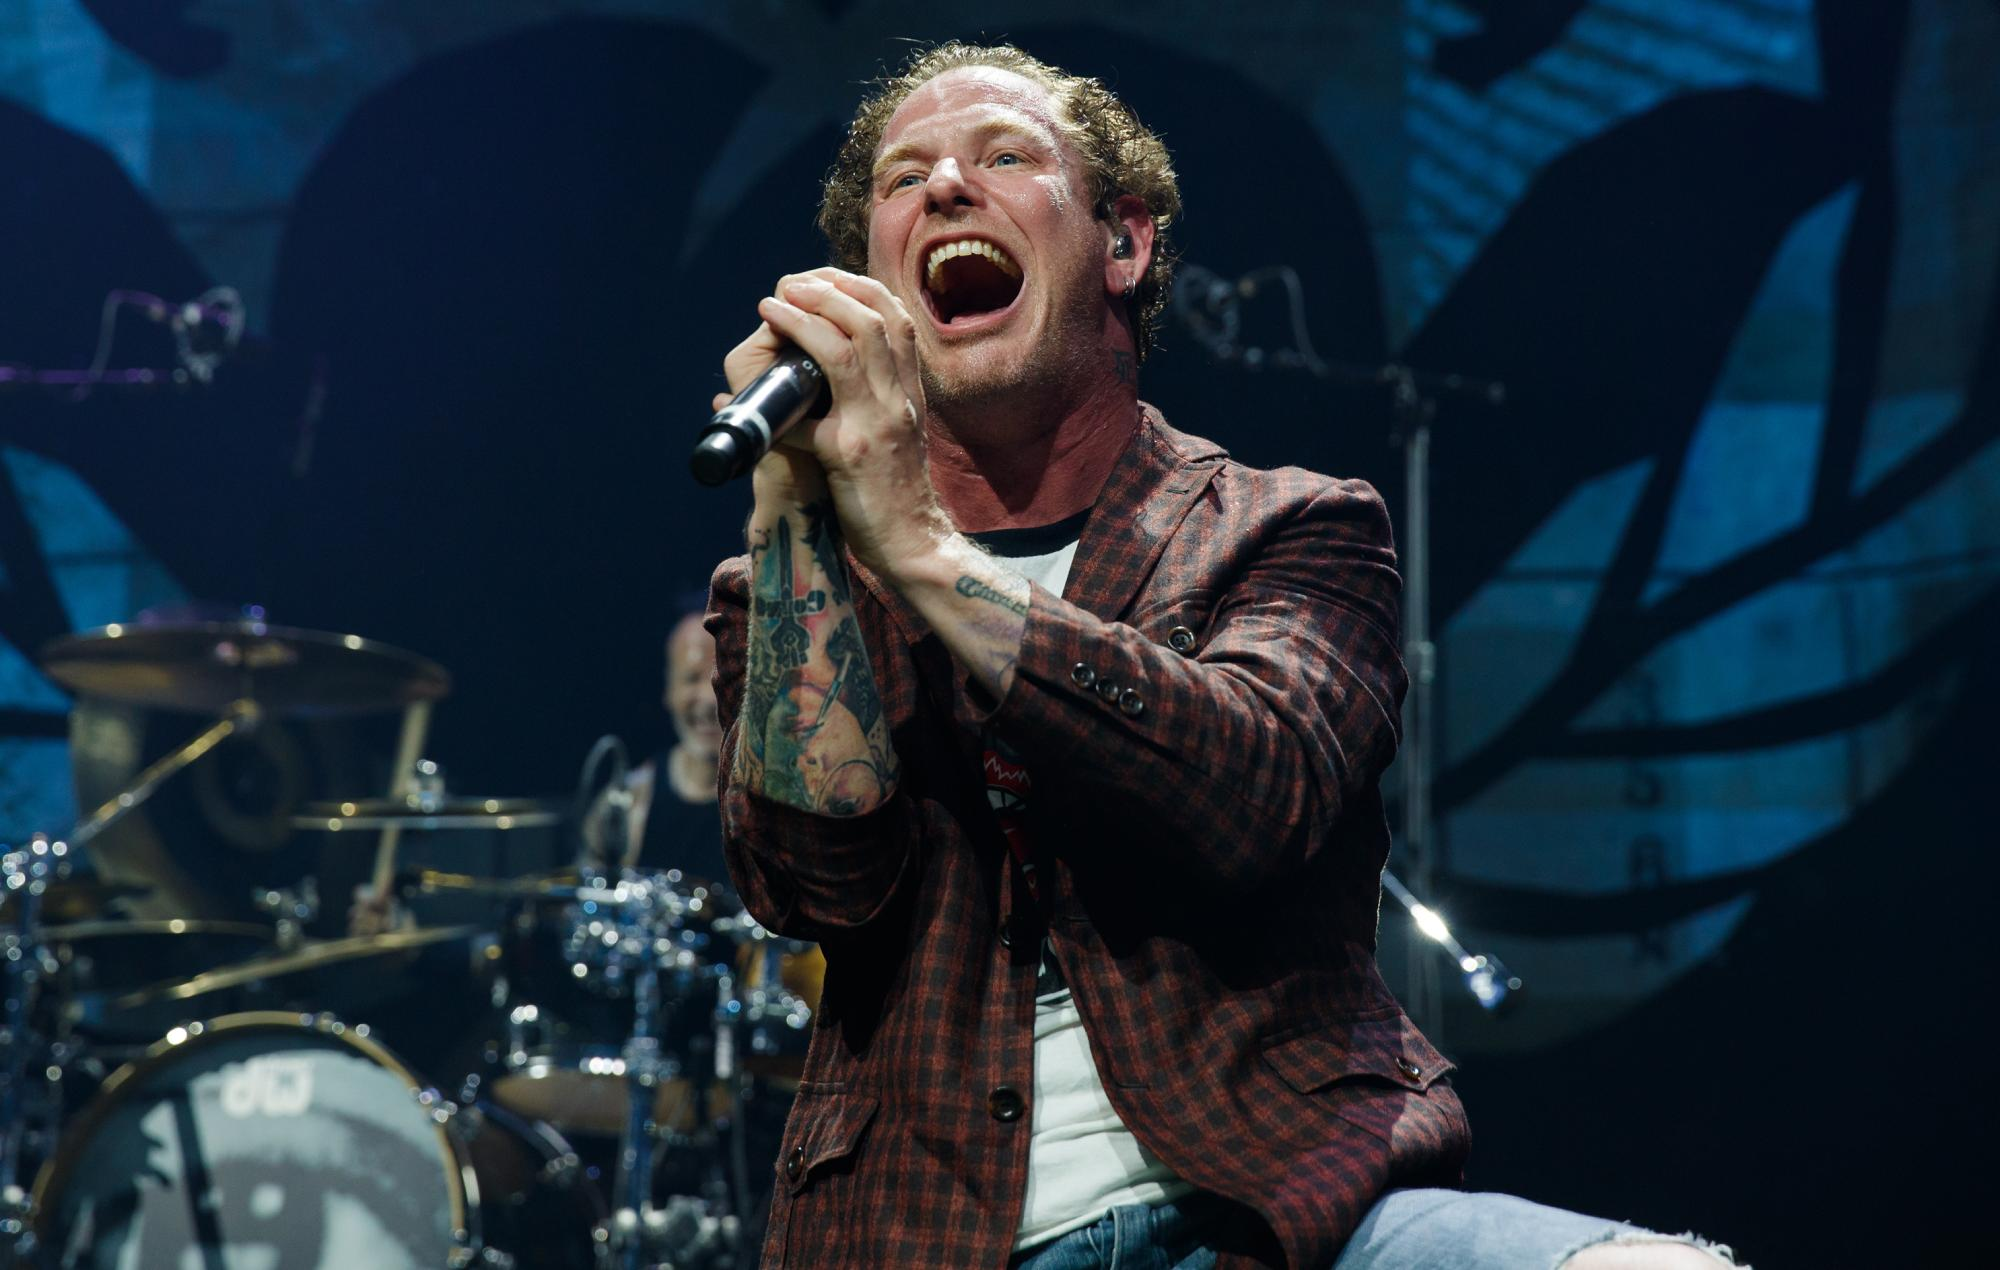 """Slipknot's Corey Taylor: """"I hate all new rock for the most part"""""""